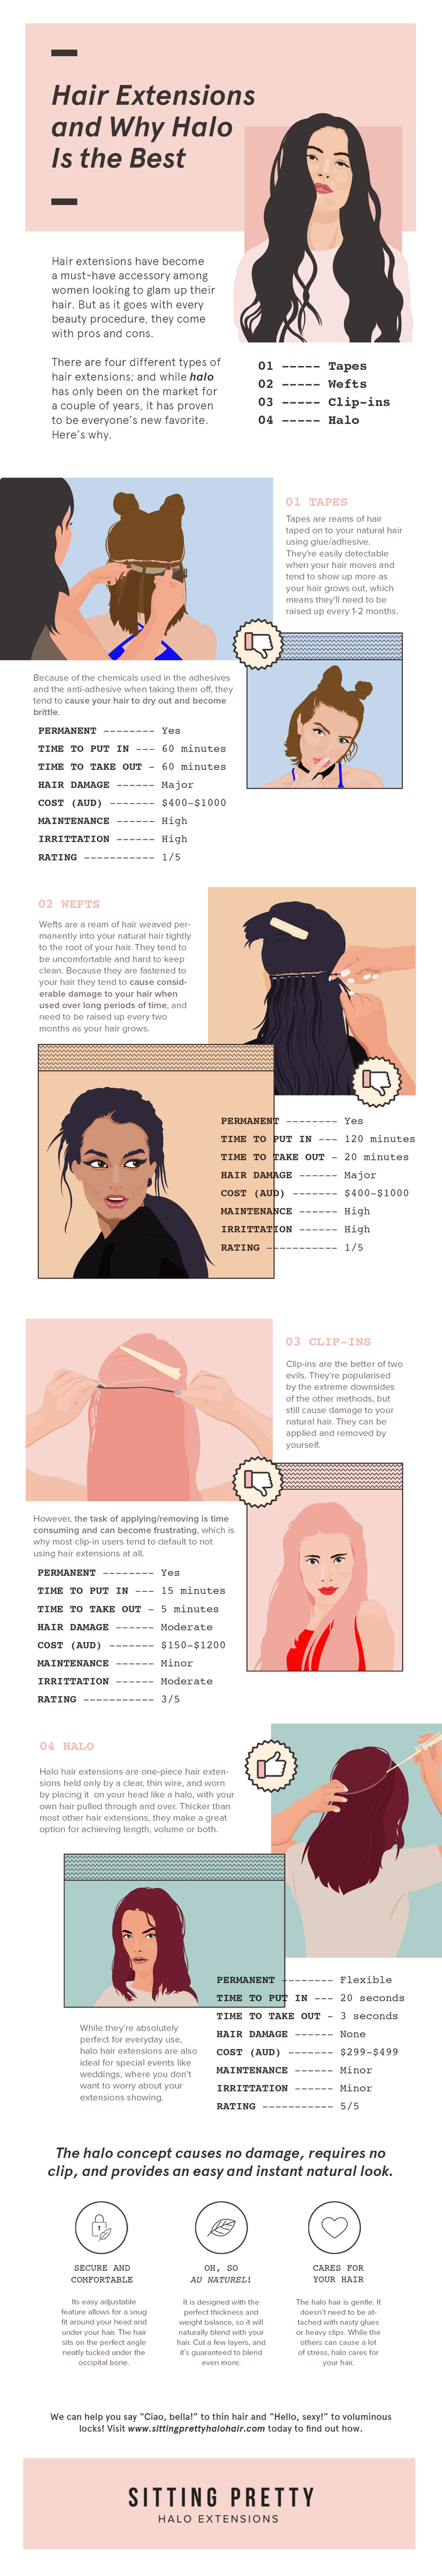 why choose halo hair extension infographic